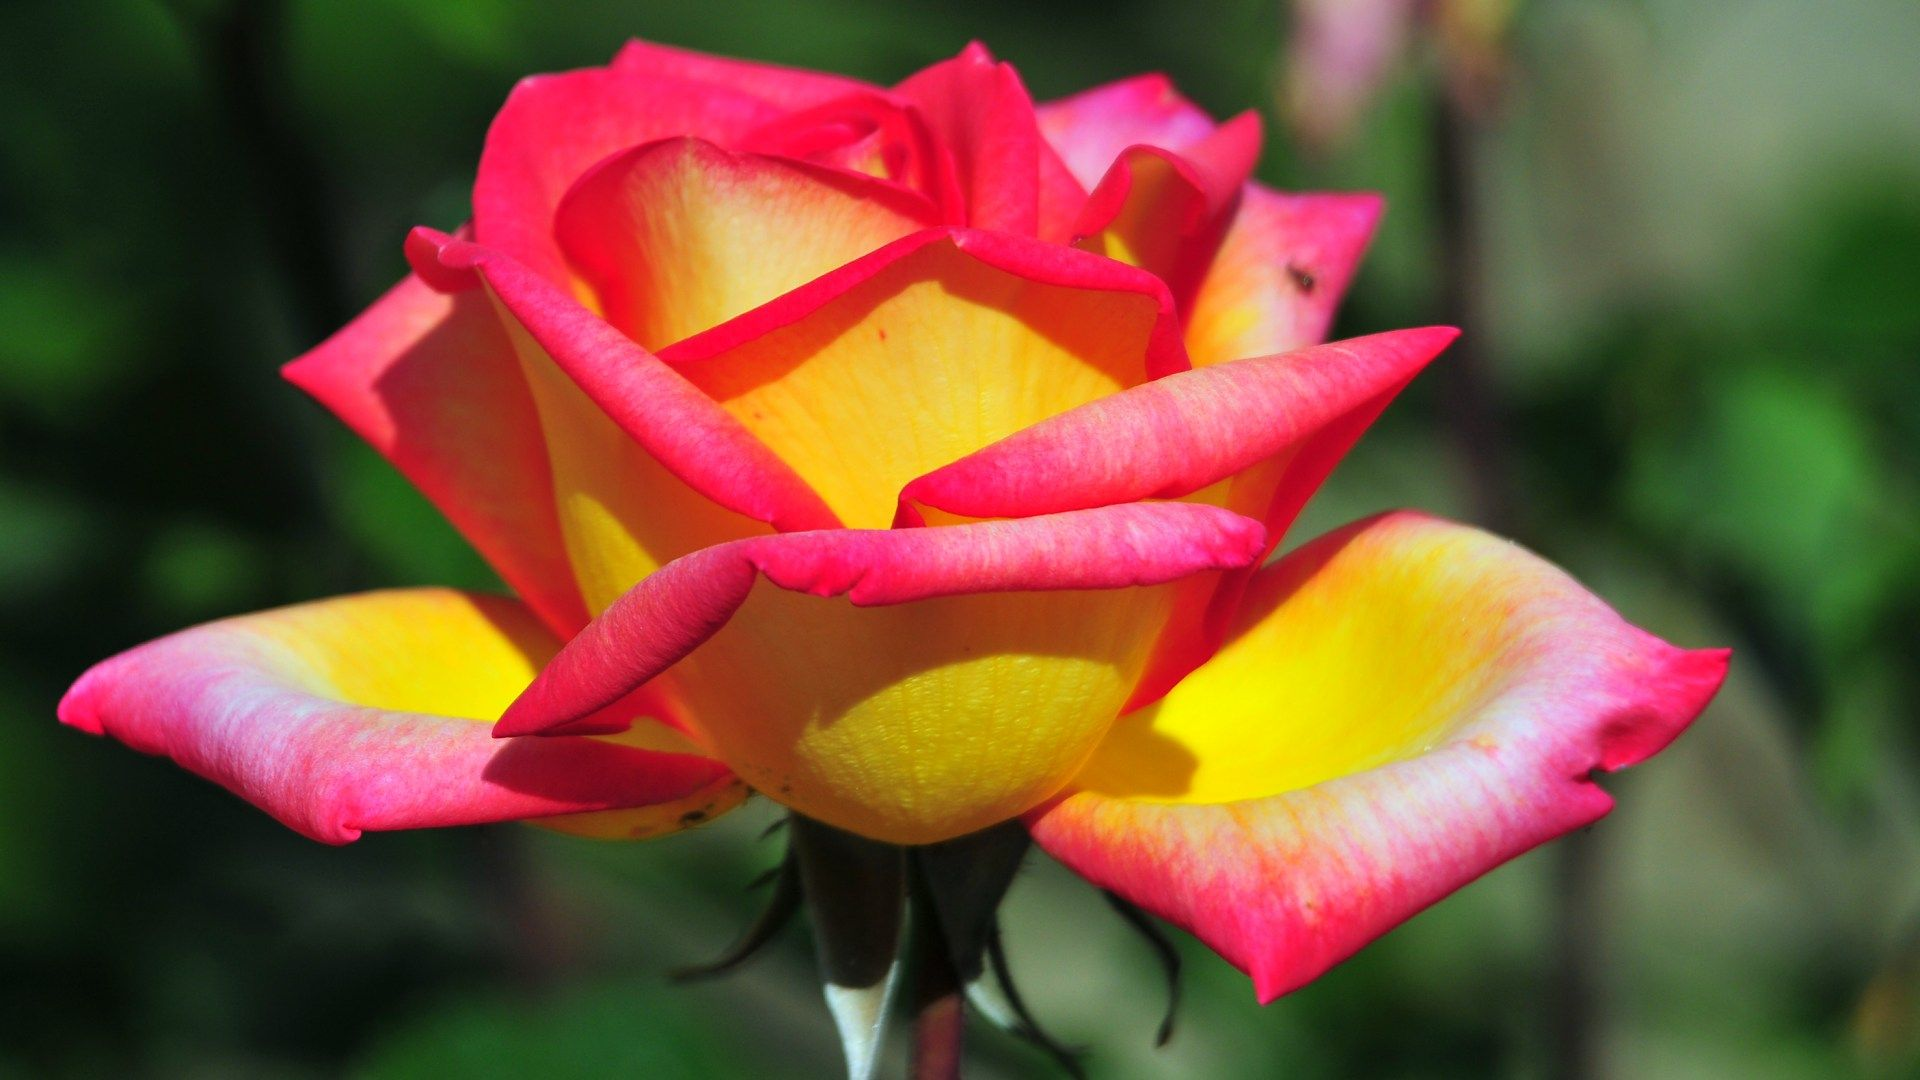 Wallpaper 275972 Beautiful Rose Flowers Rose Seeds Yellow Rose Flower